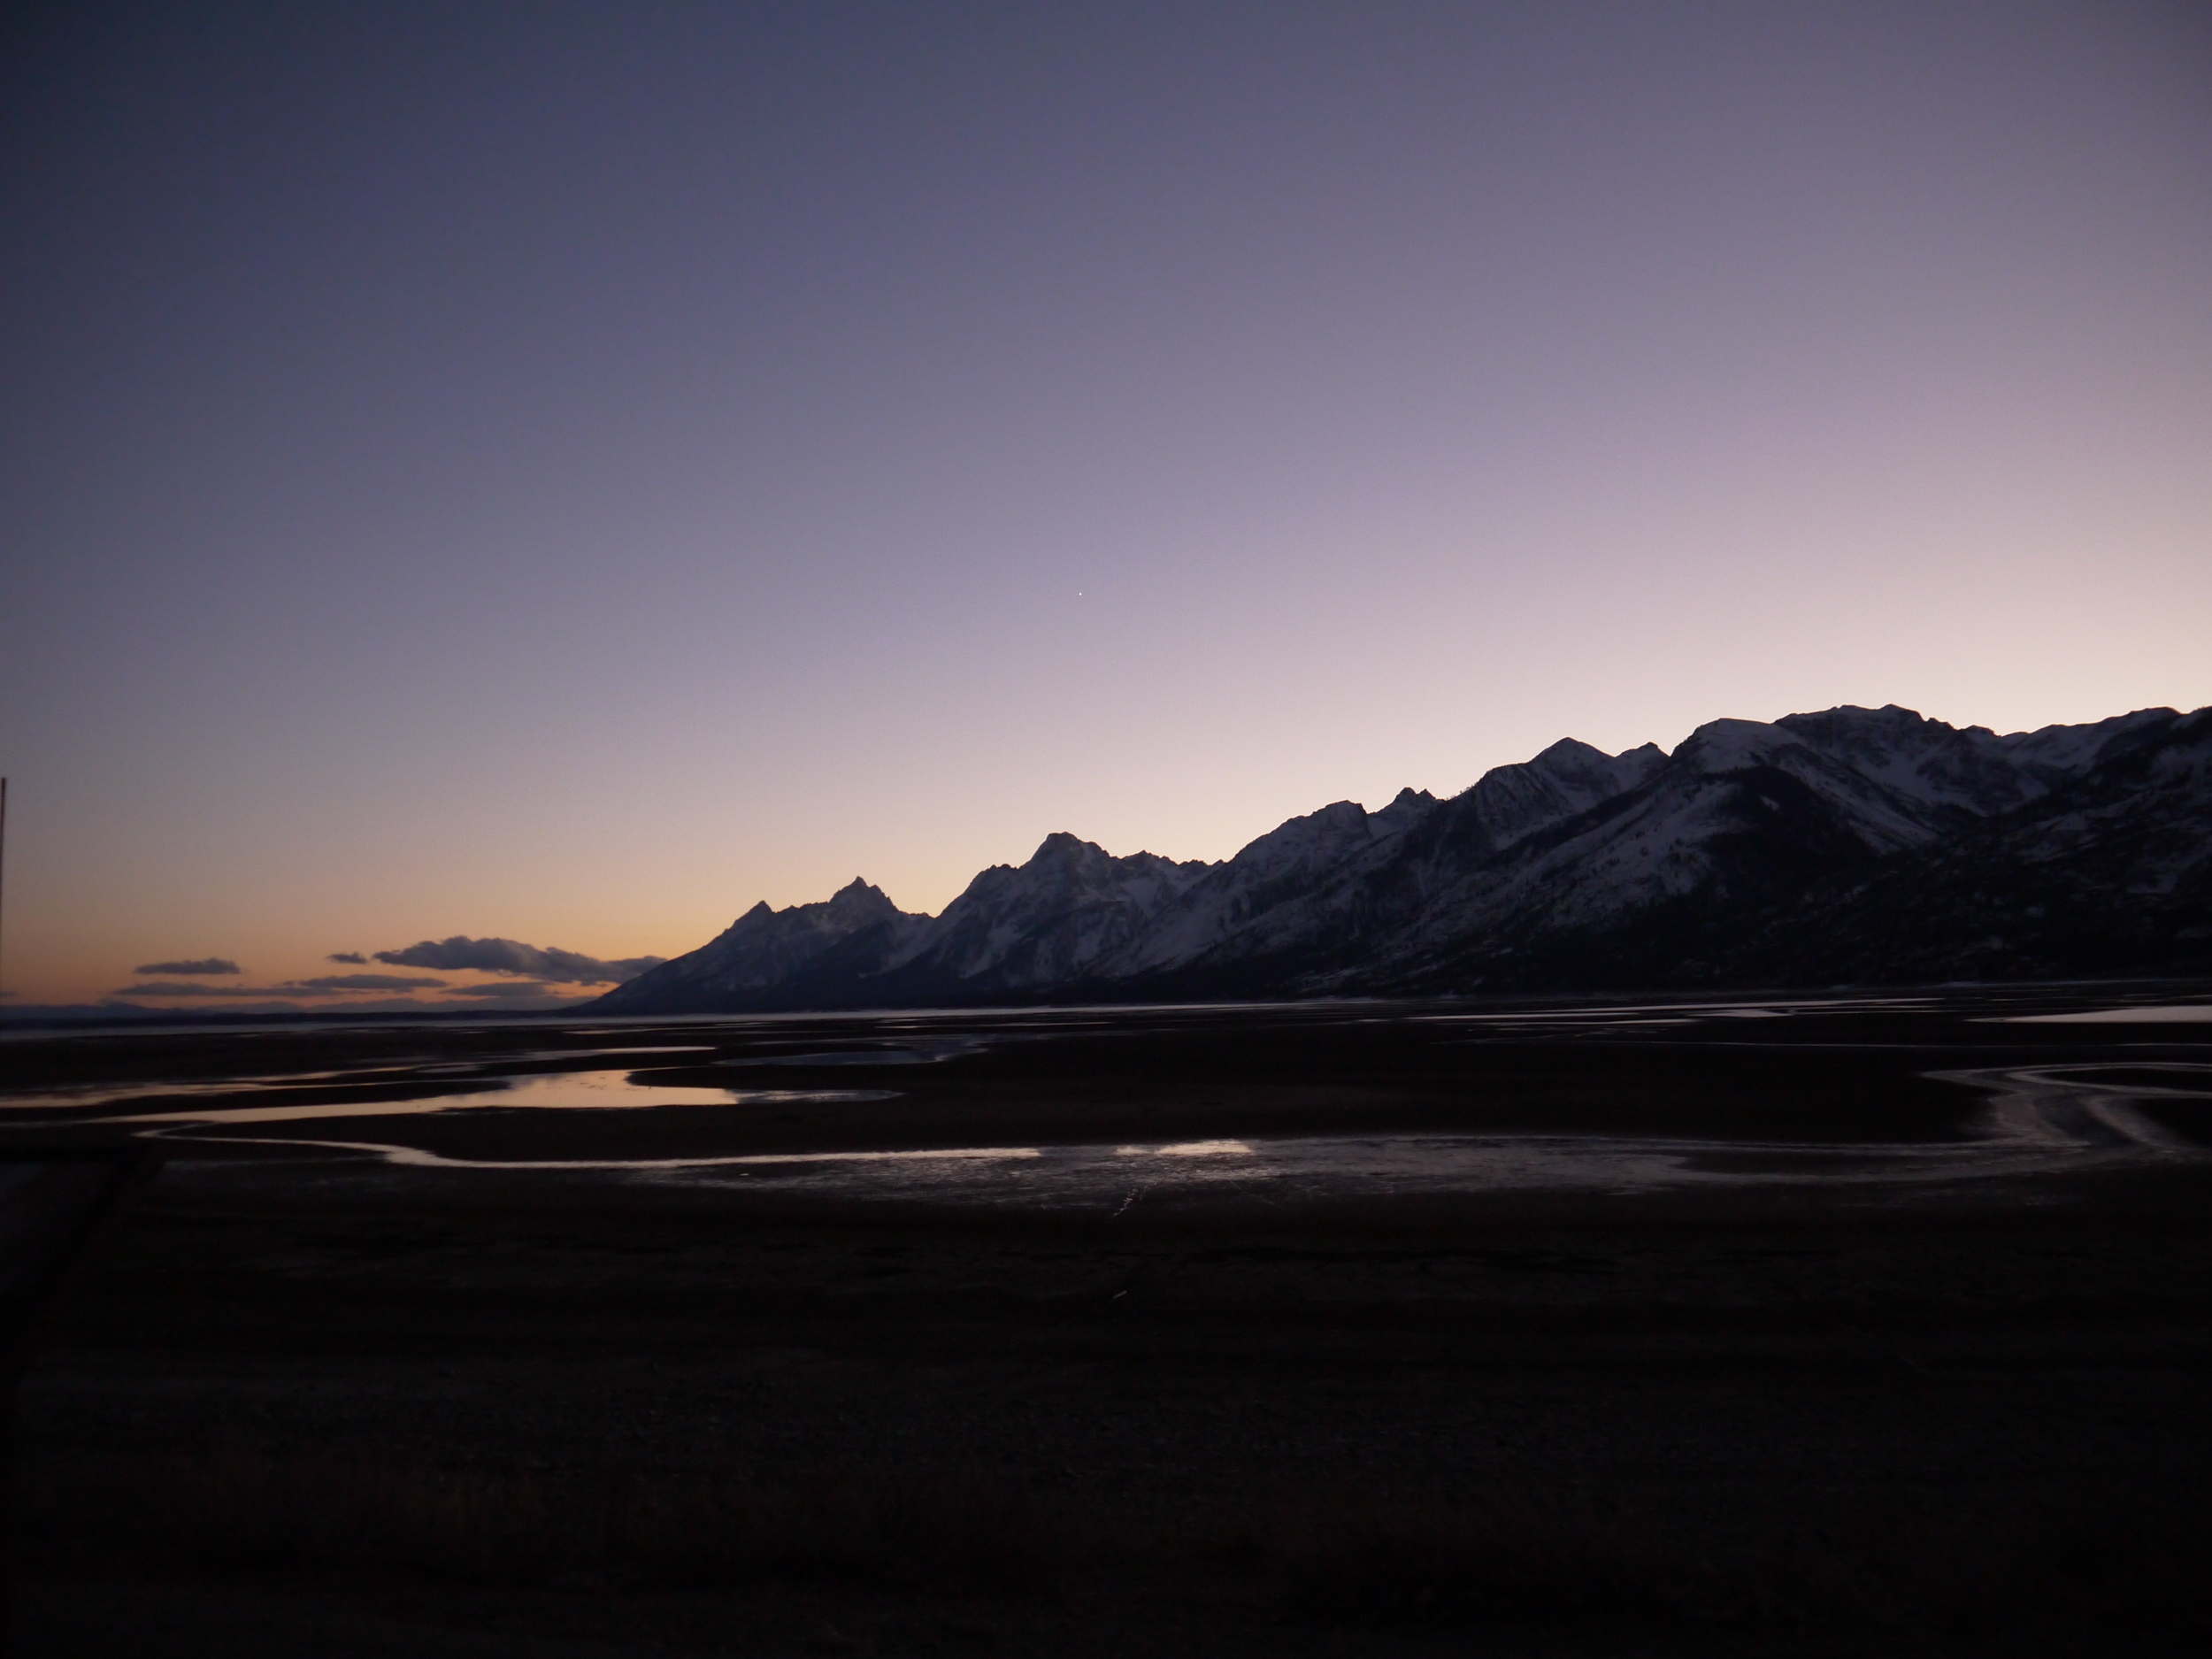 Driving from Ohio to San Francisco, the evening view at Yellowstone National park is arresting.